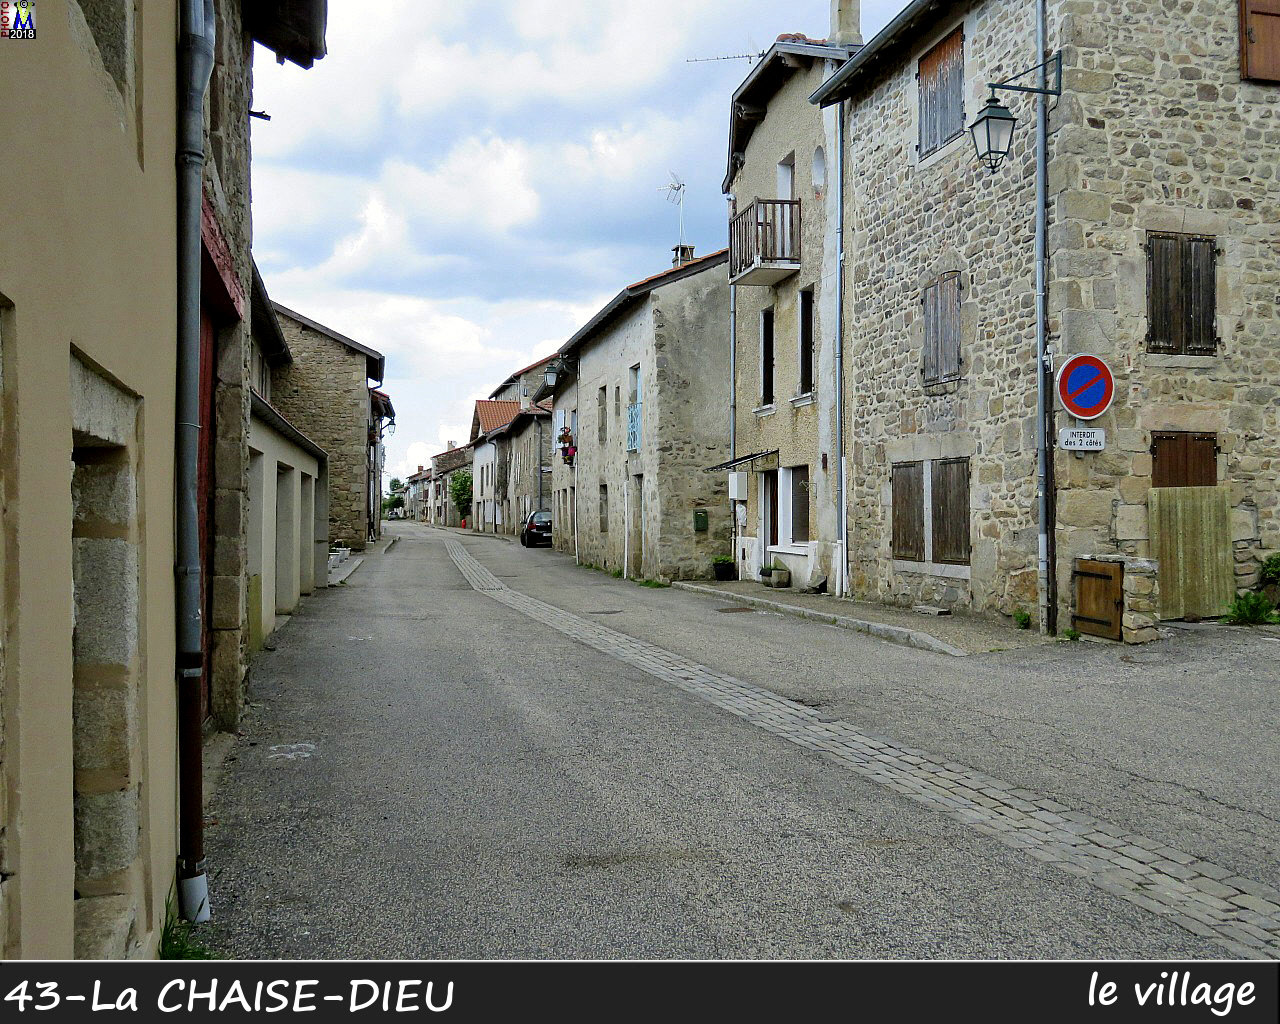 43CHAISE-DIEU_village_112.jpg